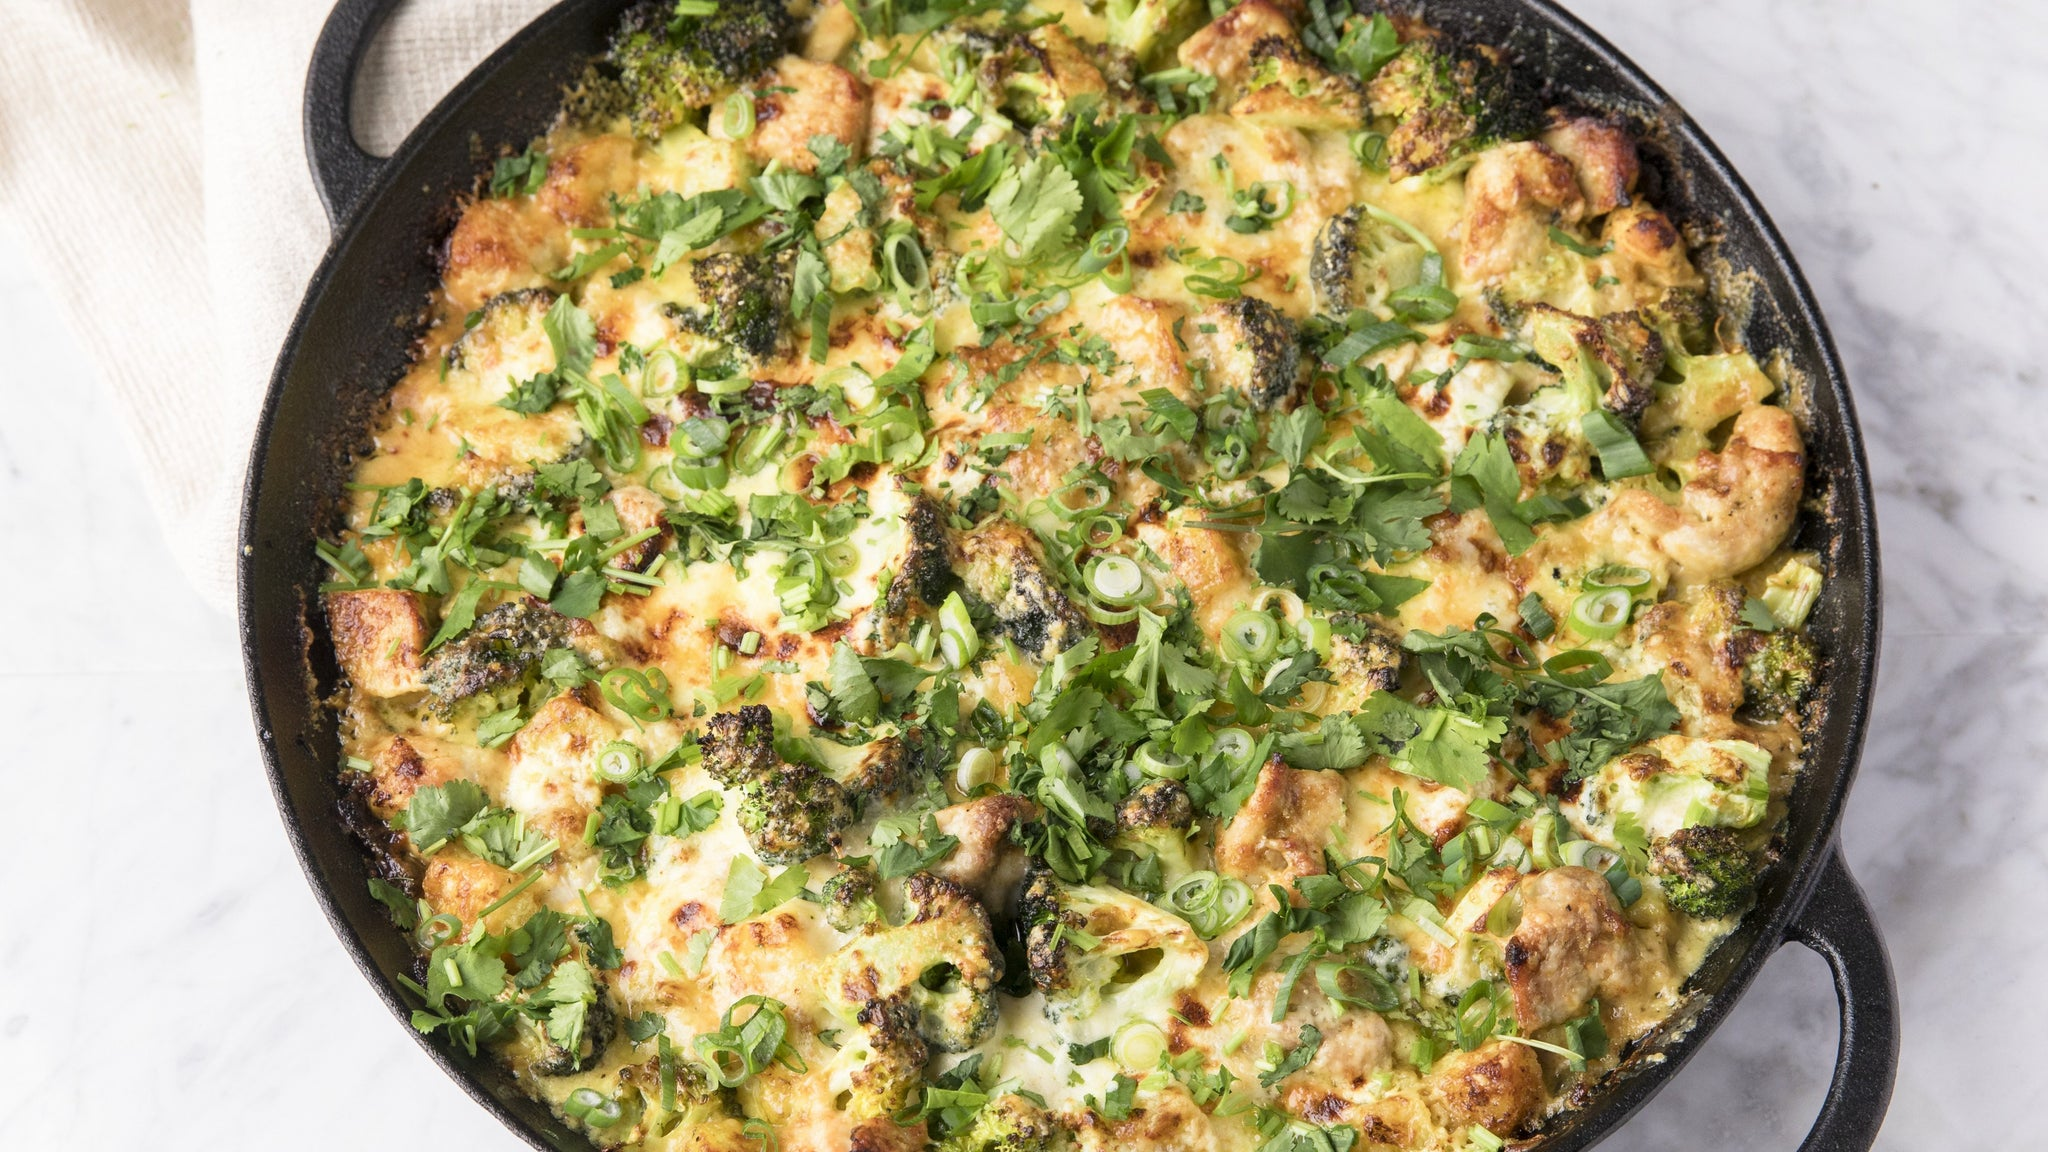 Broccoli, Chicken, Cheddar and Curry Casserole